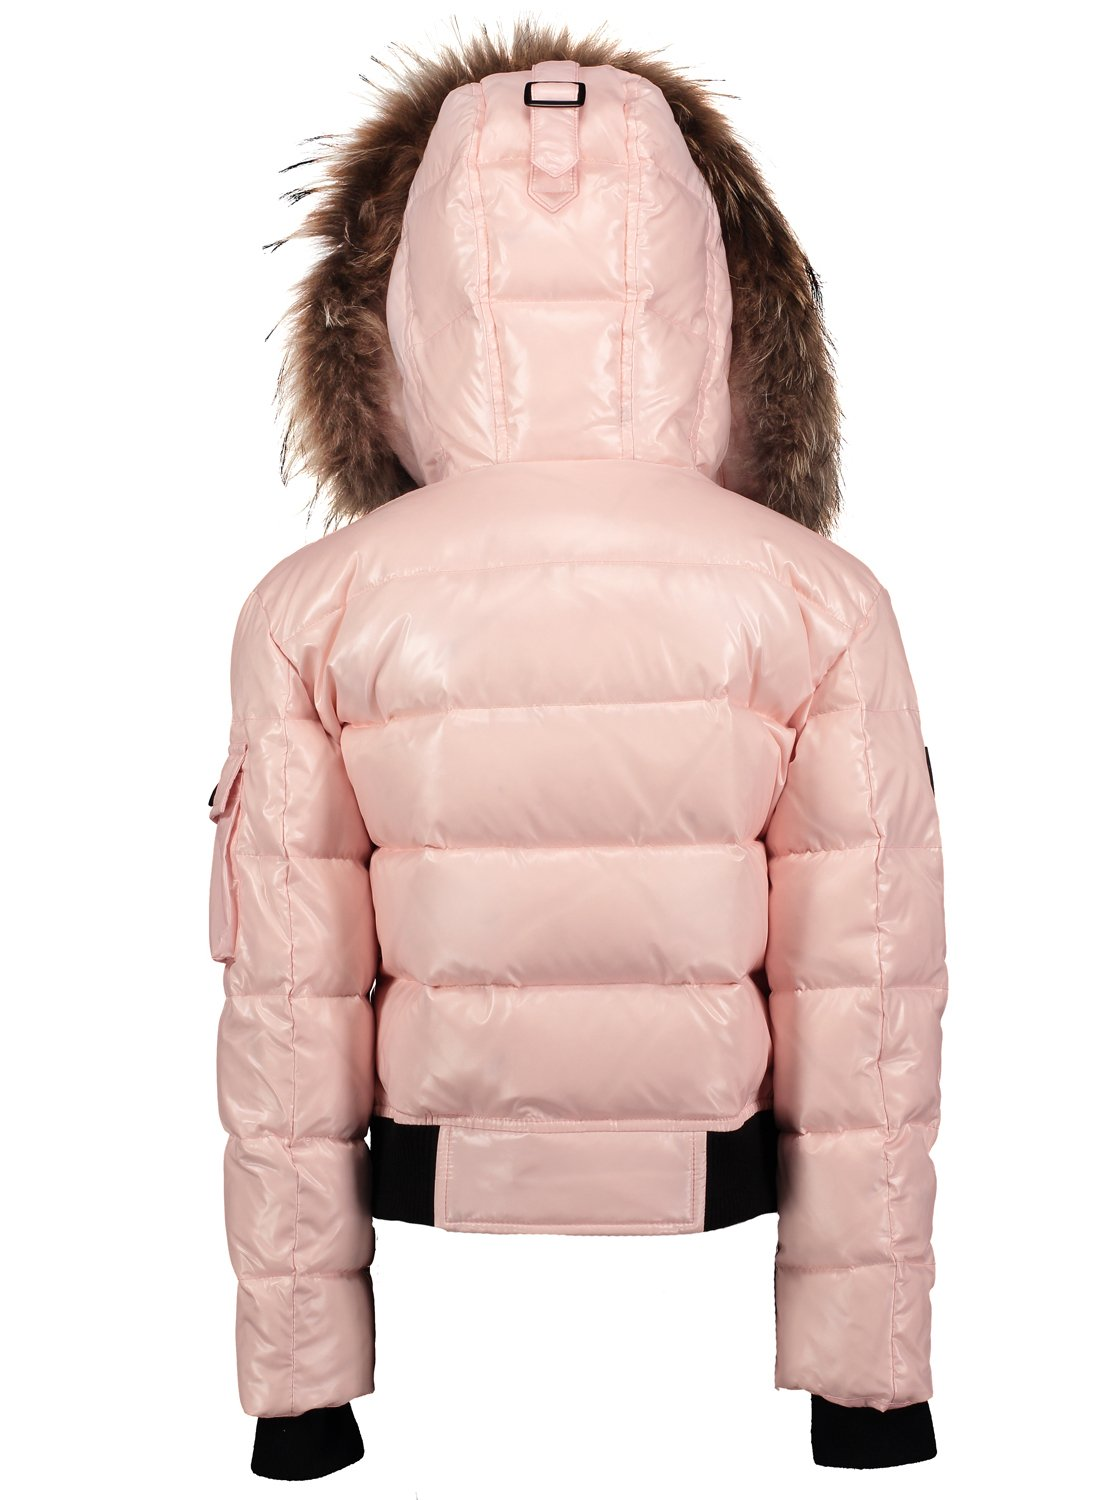 TODDLER GIRLS SKYLER TODDLER GIRLS SKYLER - SAM. New York Sam nyc jacket